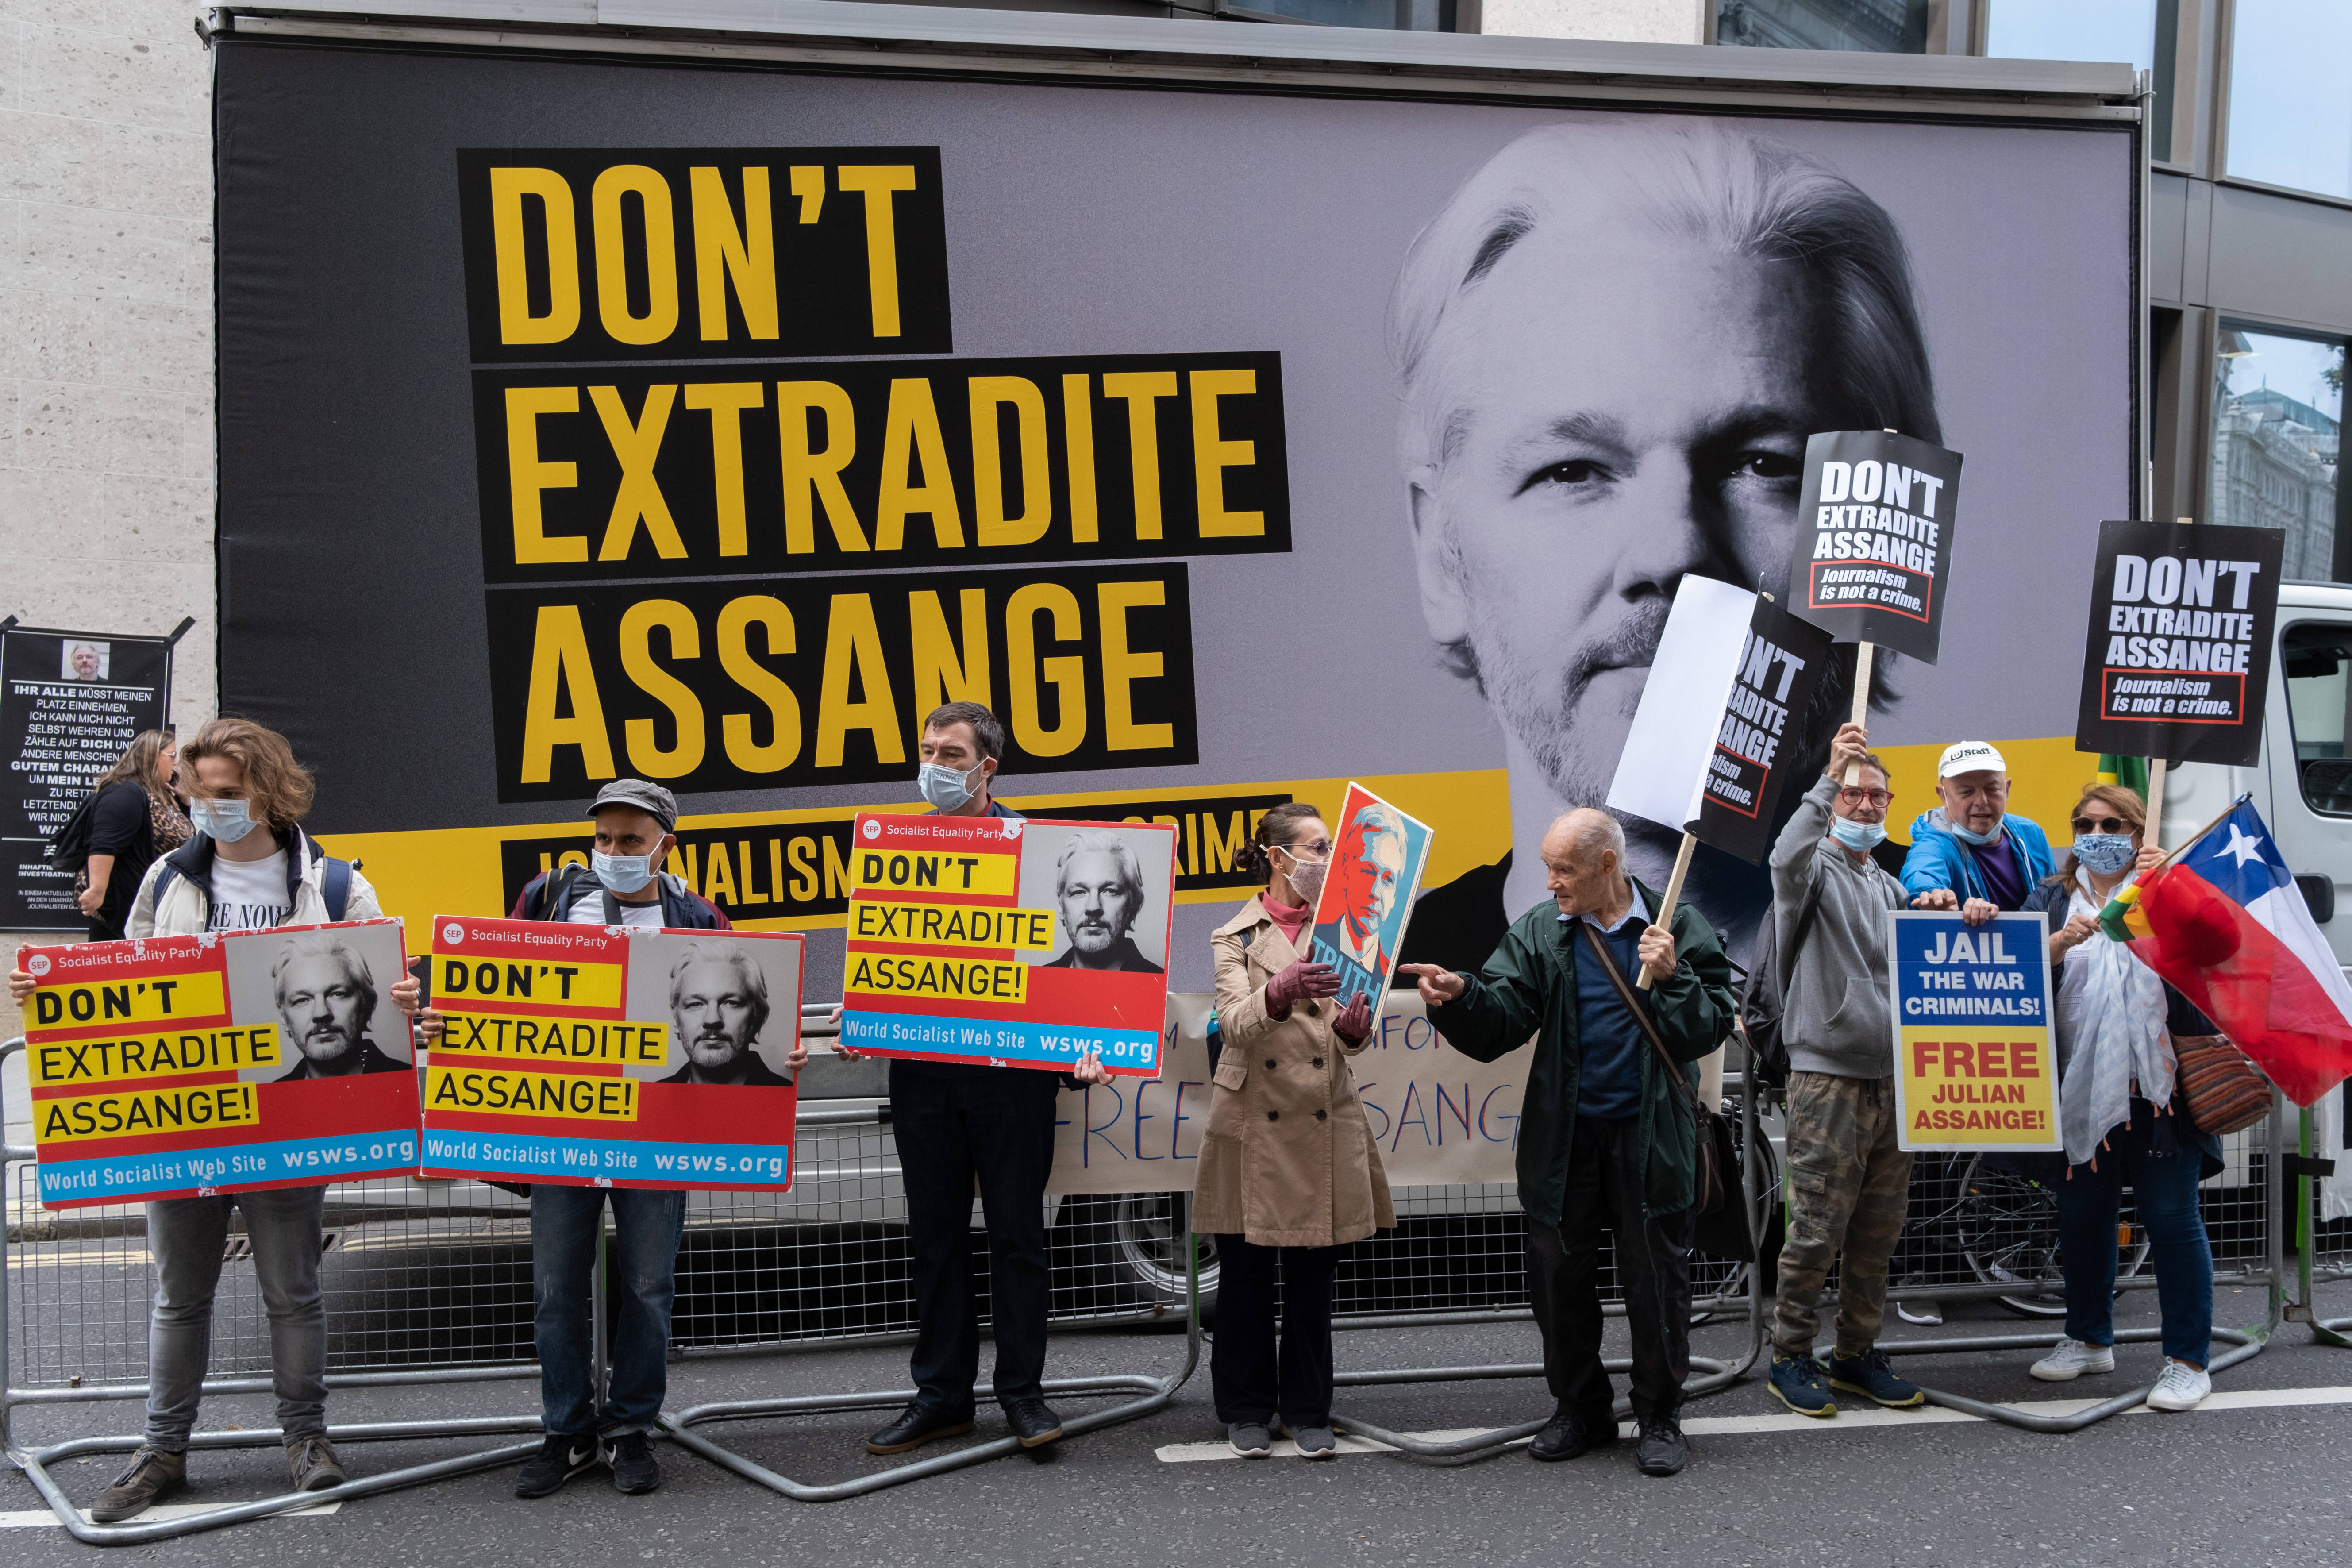 Supporters of Wikileaks founder Julian Assange protest outside London's Old Bailey court on September 7.